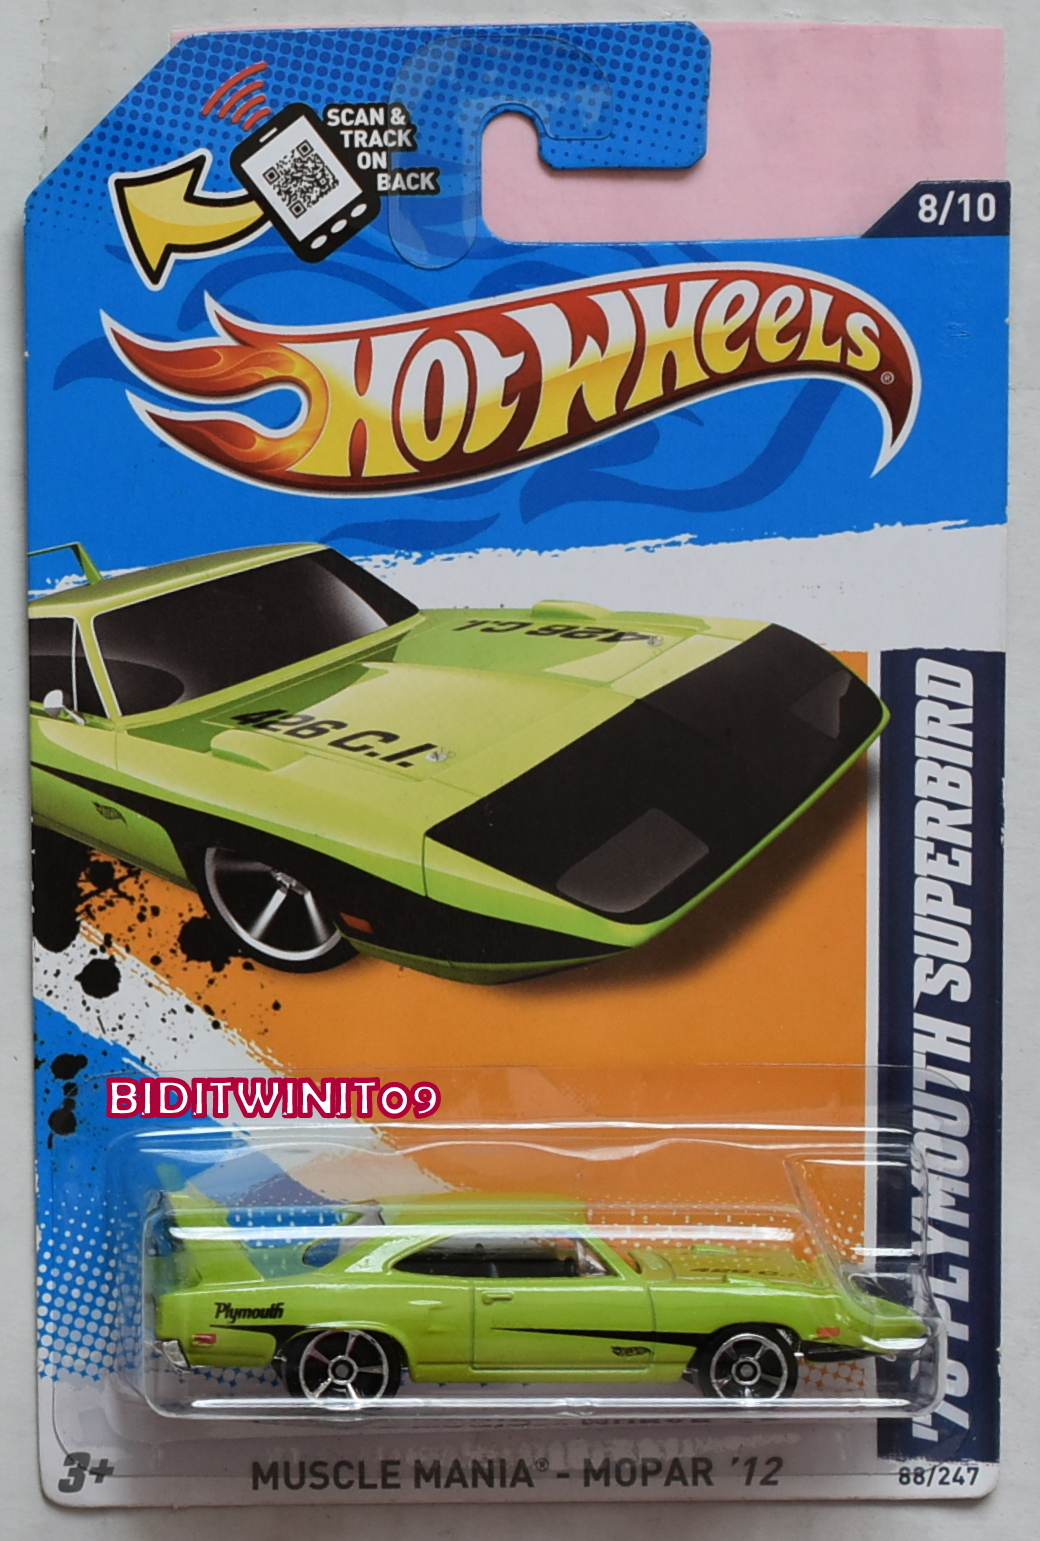 HOT WHEELS 2012 MUSCLE MANIA '70 PLYMOUTH SUPERBIRD VARIATION E+